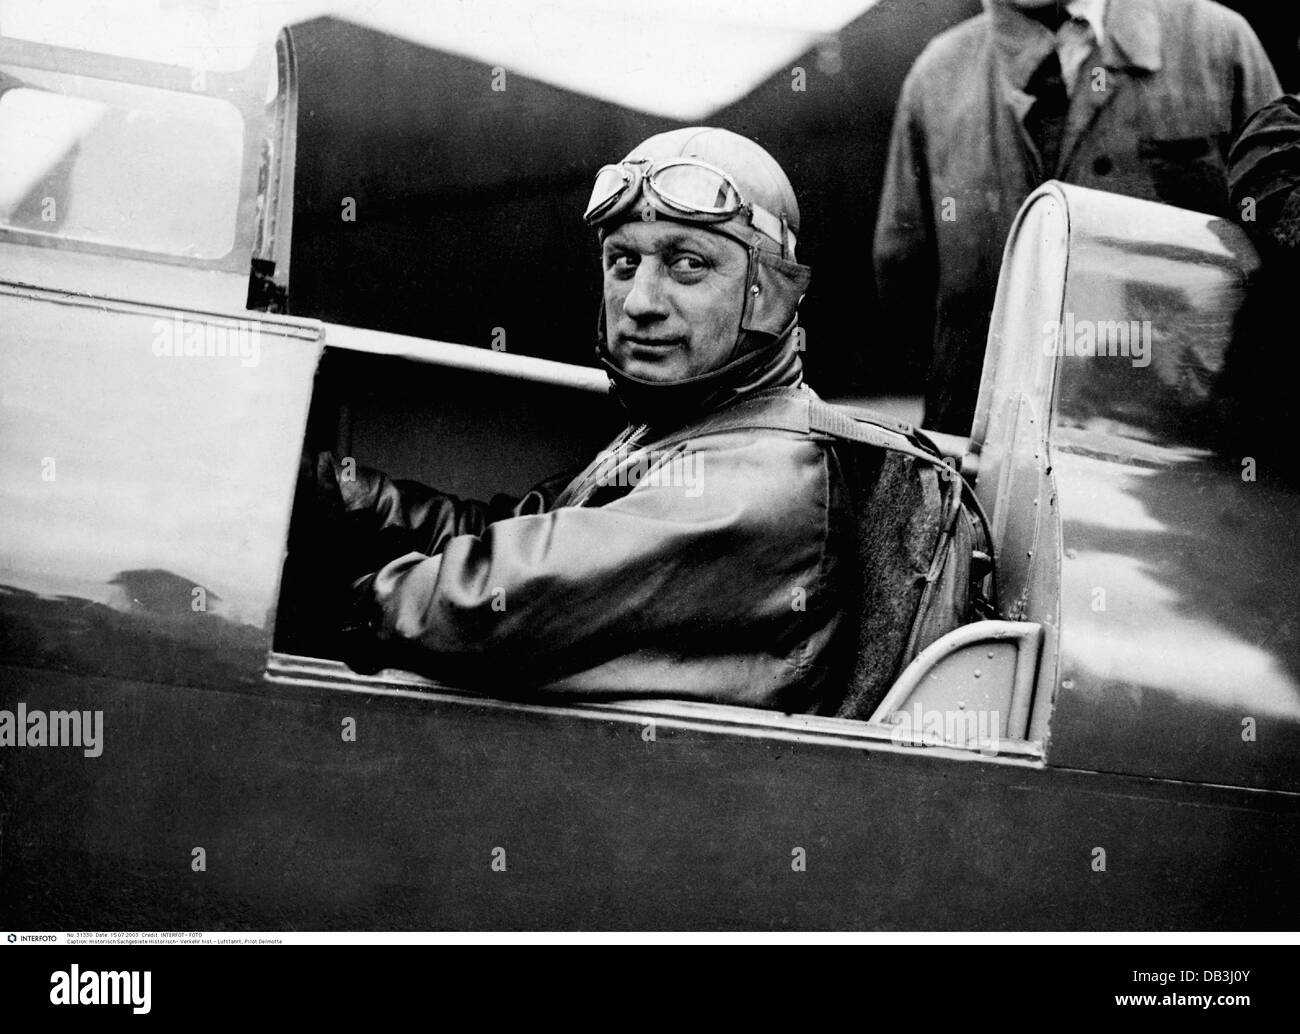 transport / transportation, aviation, pilot, Raymond Delmotte, 1930s, 30s, 20th century, historic, historical, airman, - Stock Image